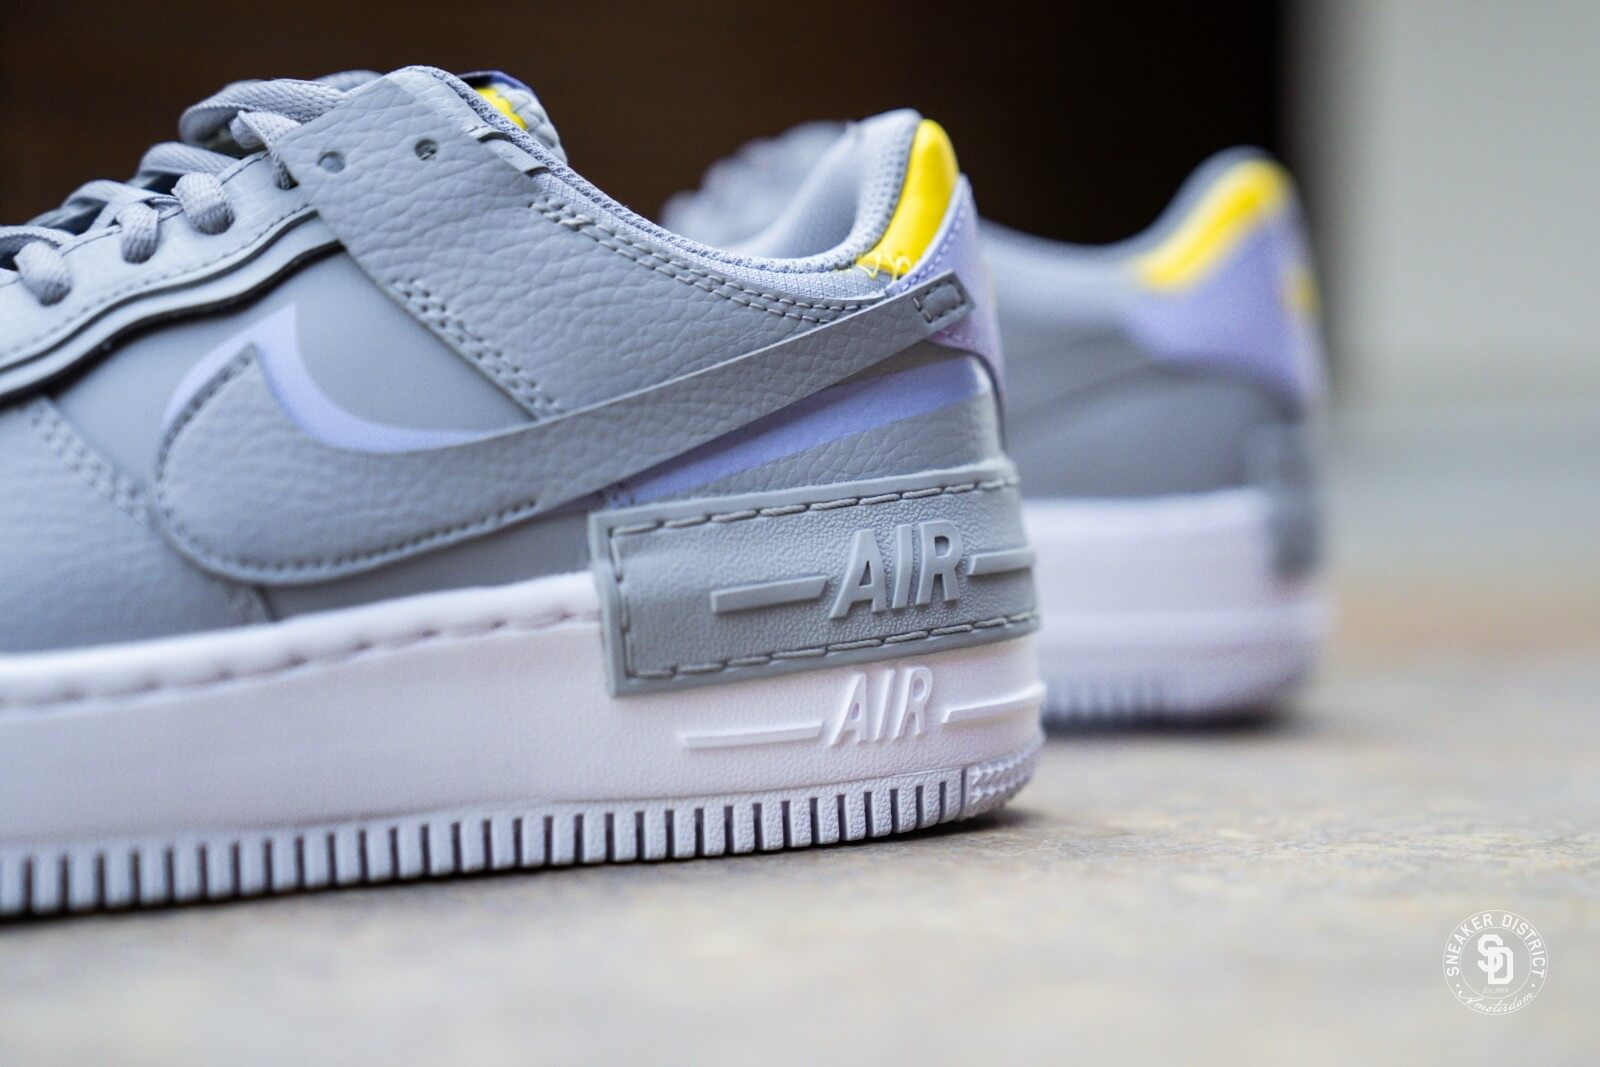 Nike Women S Air Force 1 Shadow Wolf Grey Lavender Mist Ci0919 002 This nike air force 1 comes constructed in a mix of leather and mesh with translucent overlays atop a solid grey rubber outsole. nike women s air force 1 shadow wolf grey lavender mist